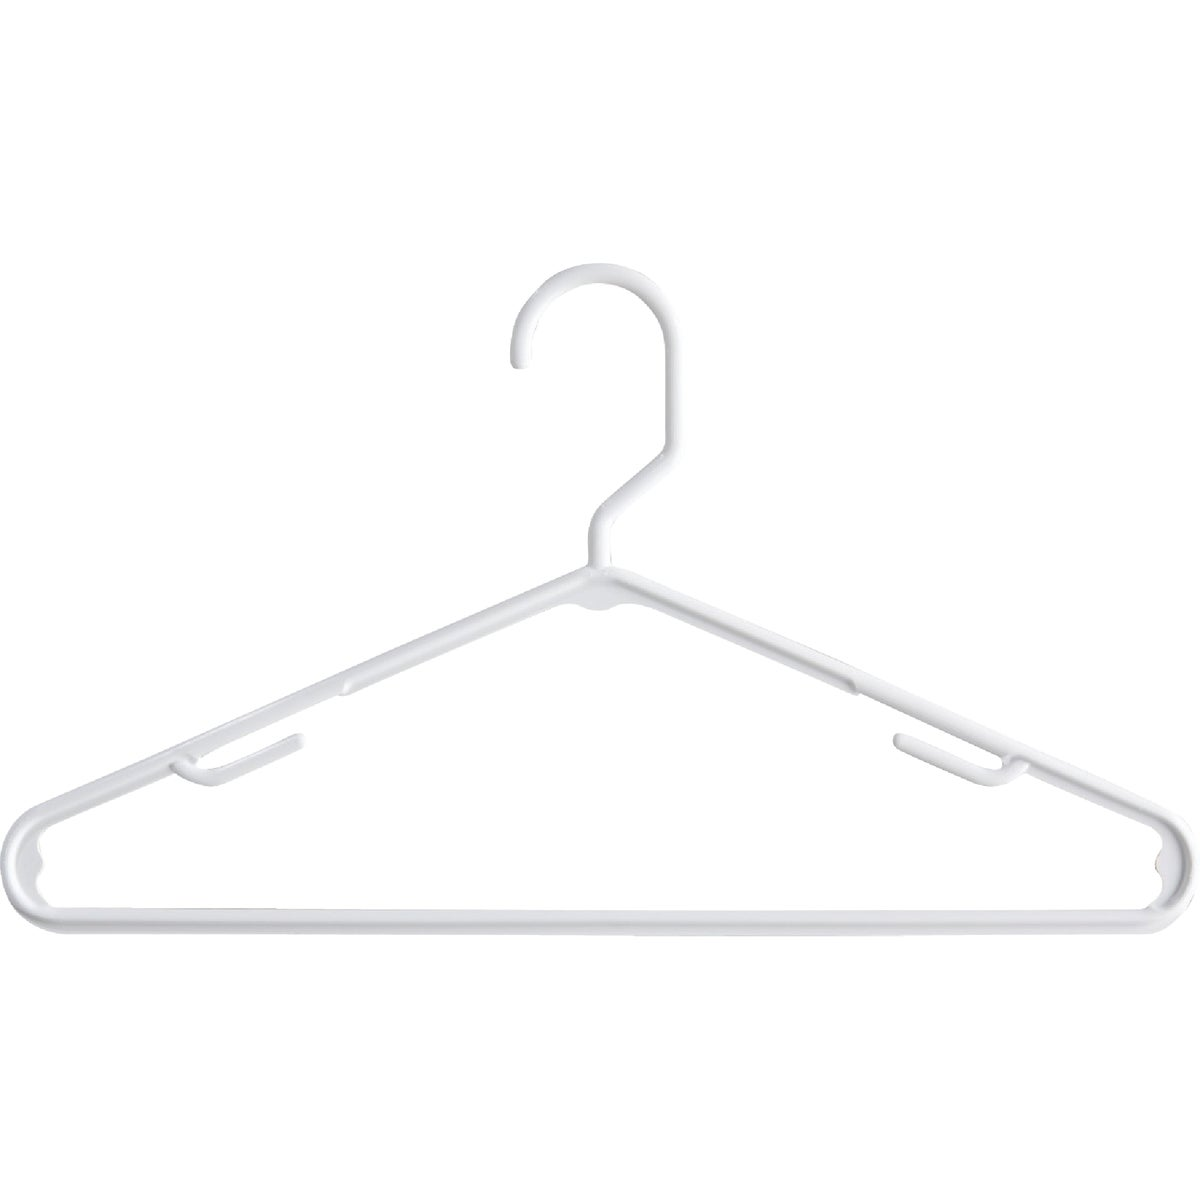 10 WHITE PLASTIC HANGERS - 680810WH.14 by Homz/ Tamor